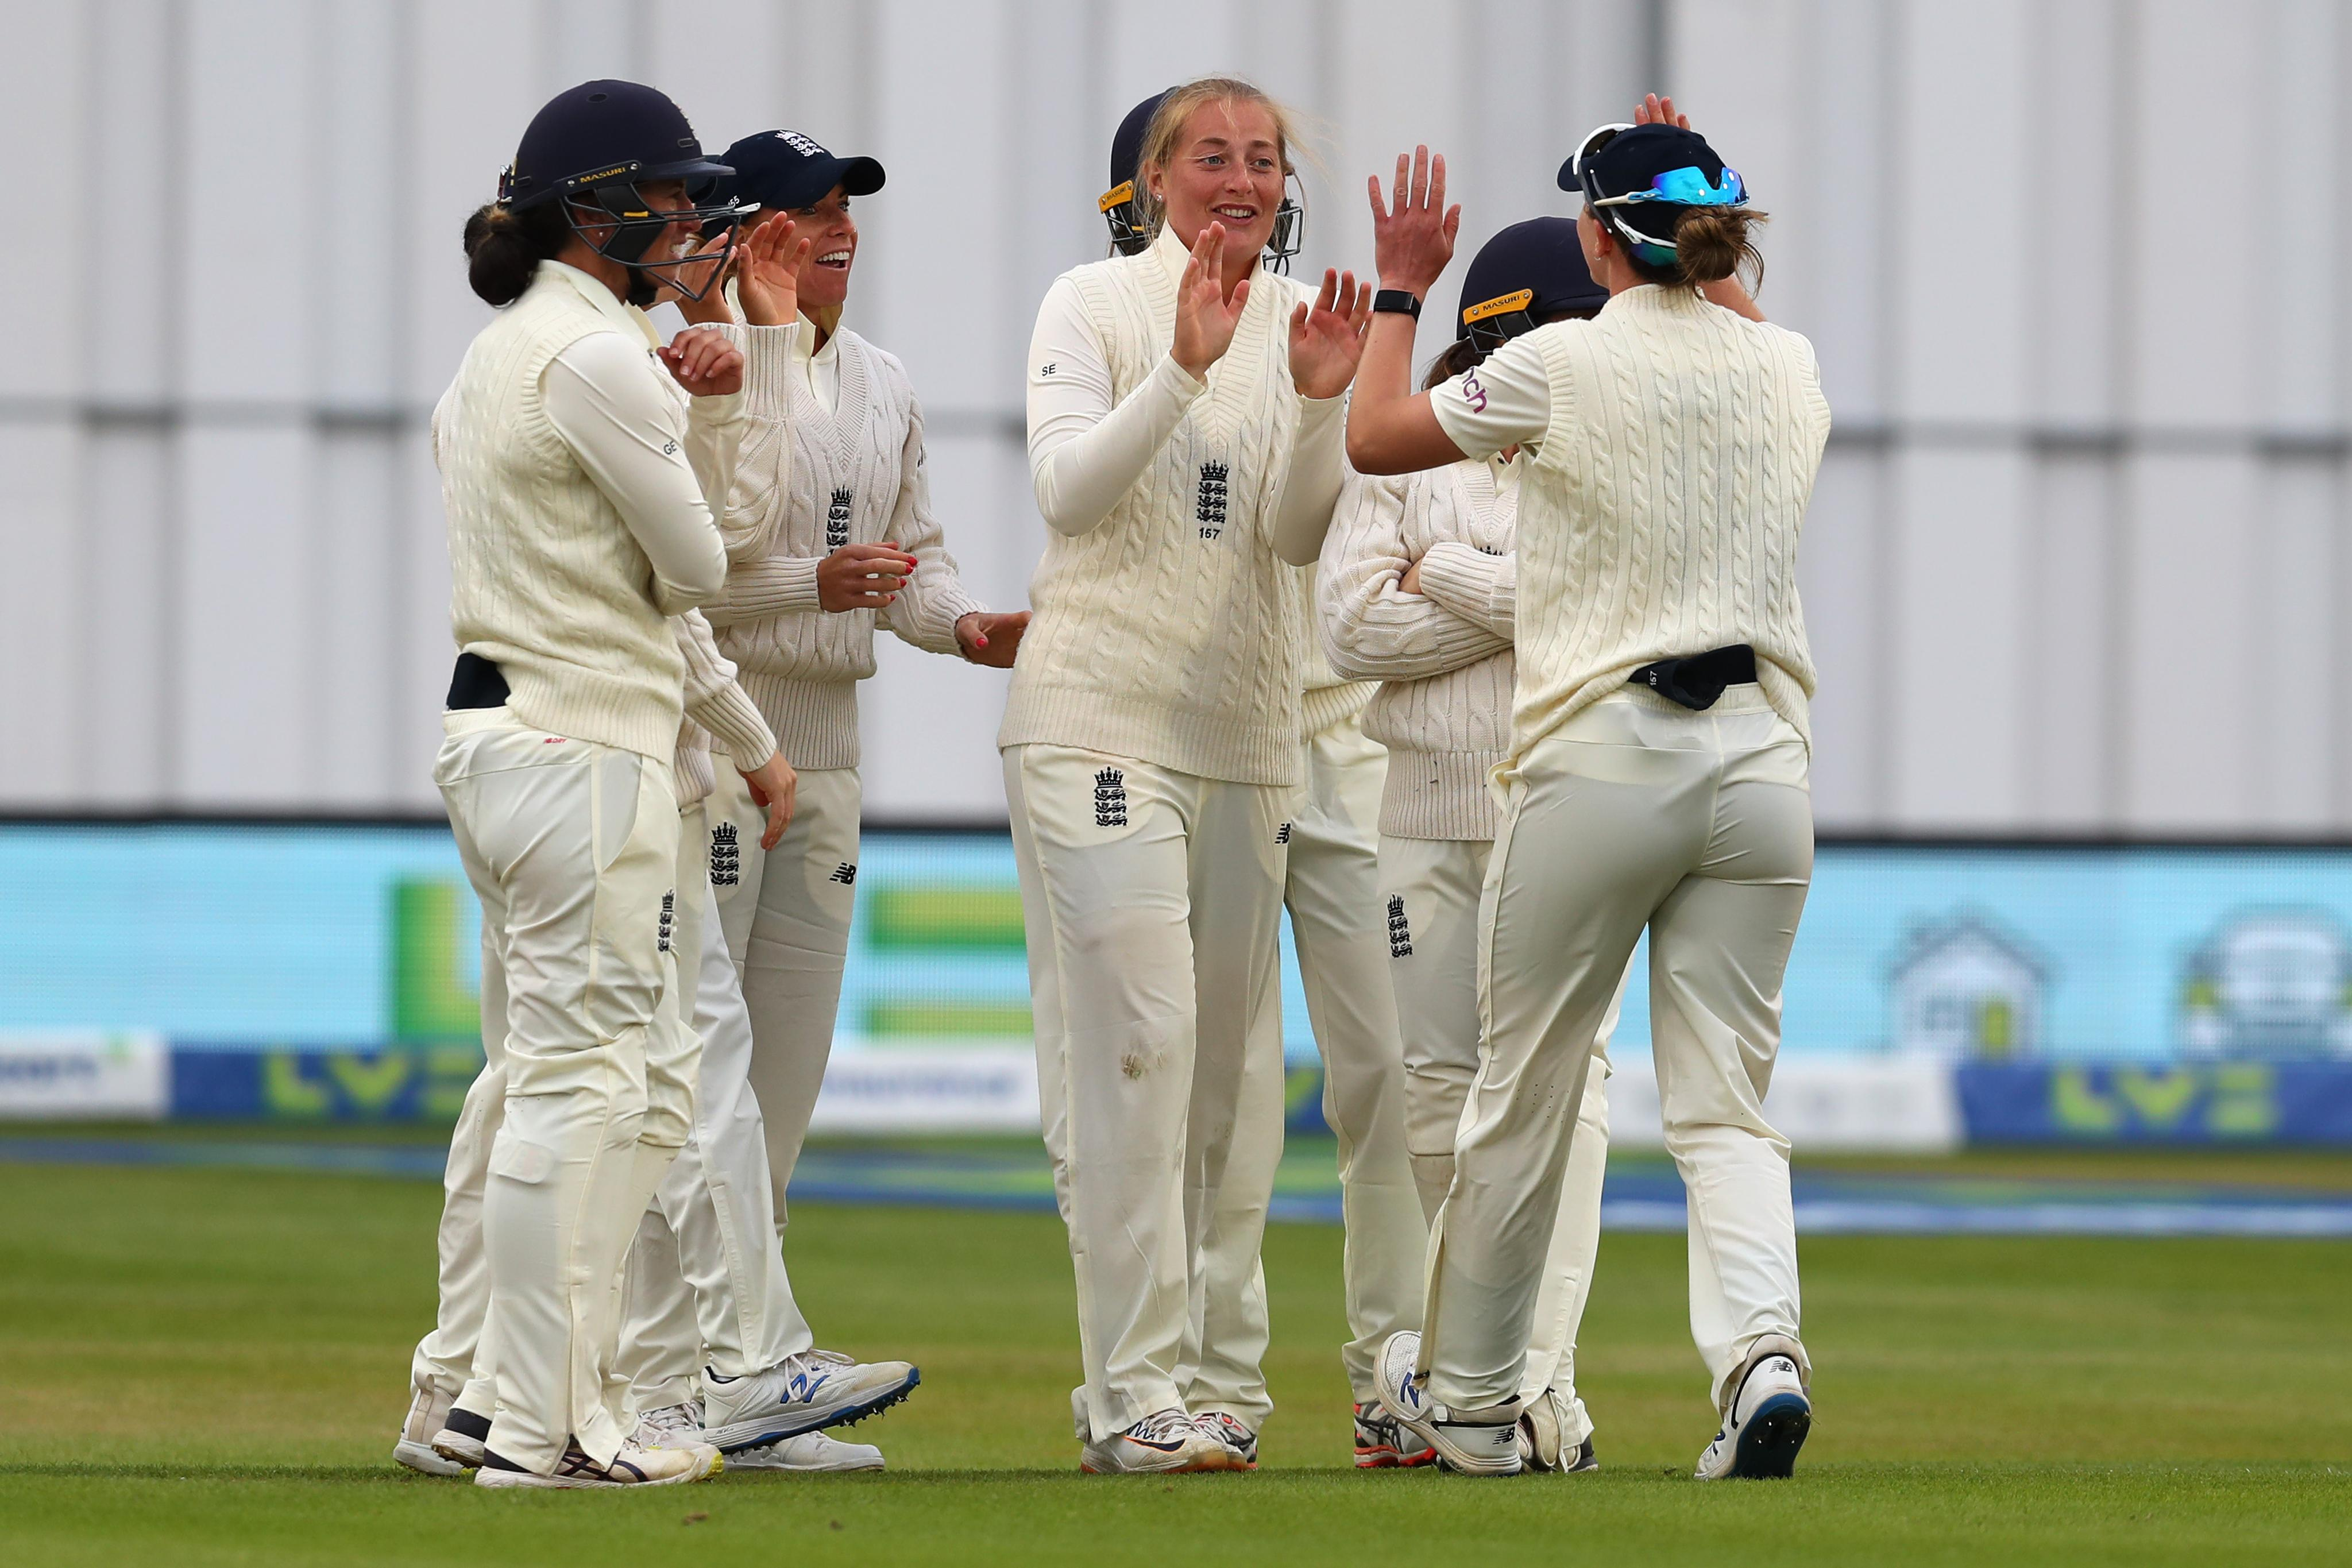 Sophie Ecclestone gets the crucial wicket of Deepti Sharma who is out for 54. PC: ICC